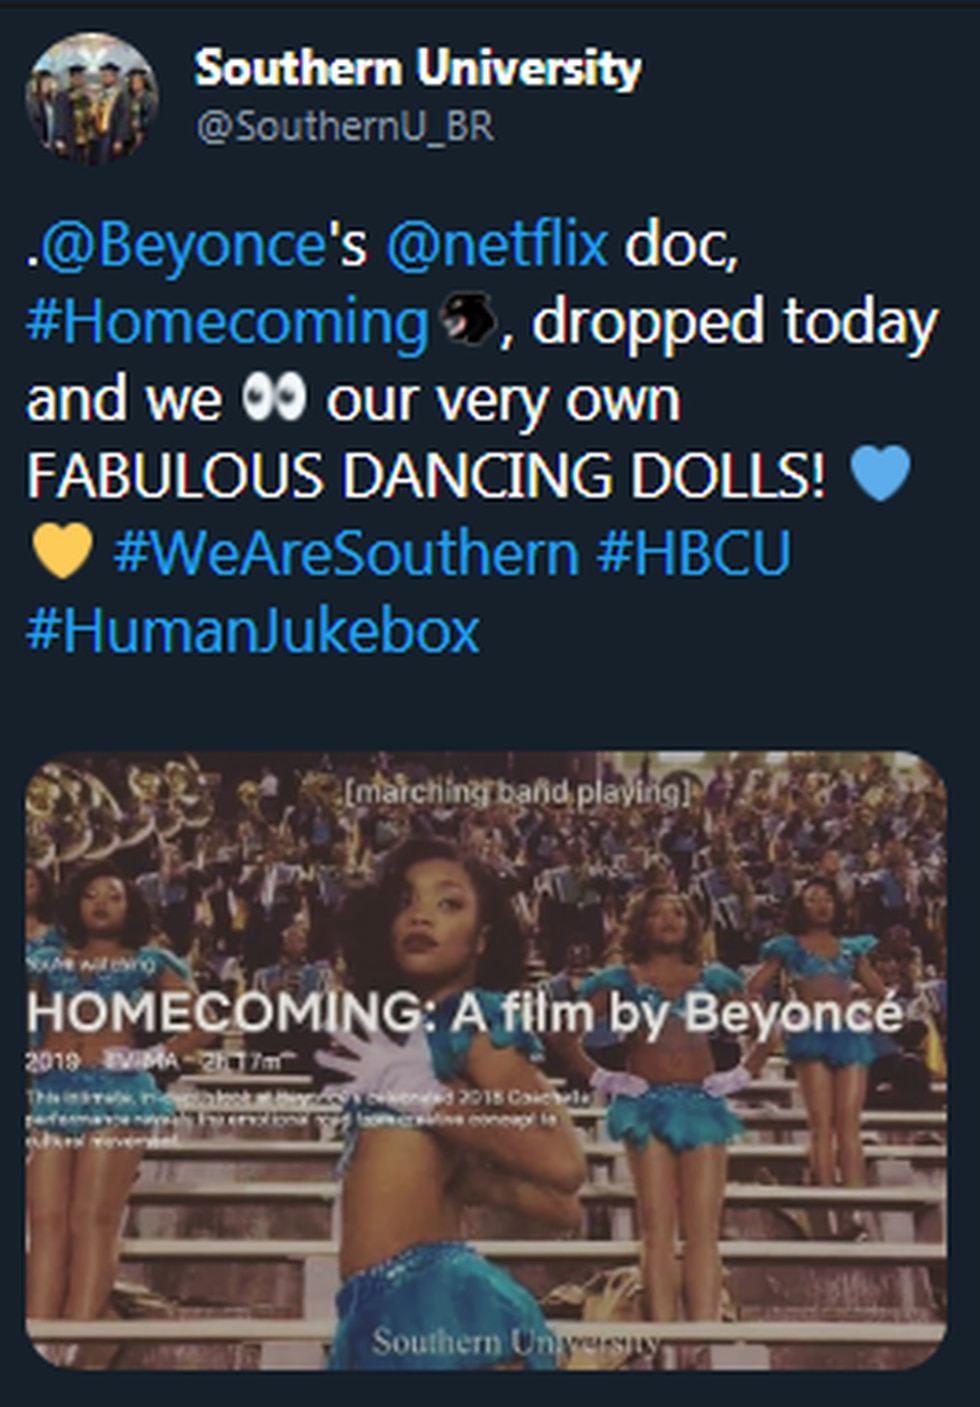 Southern University featured in Beyonce documentary.